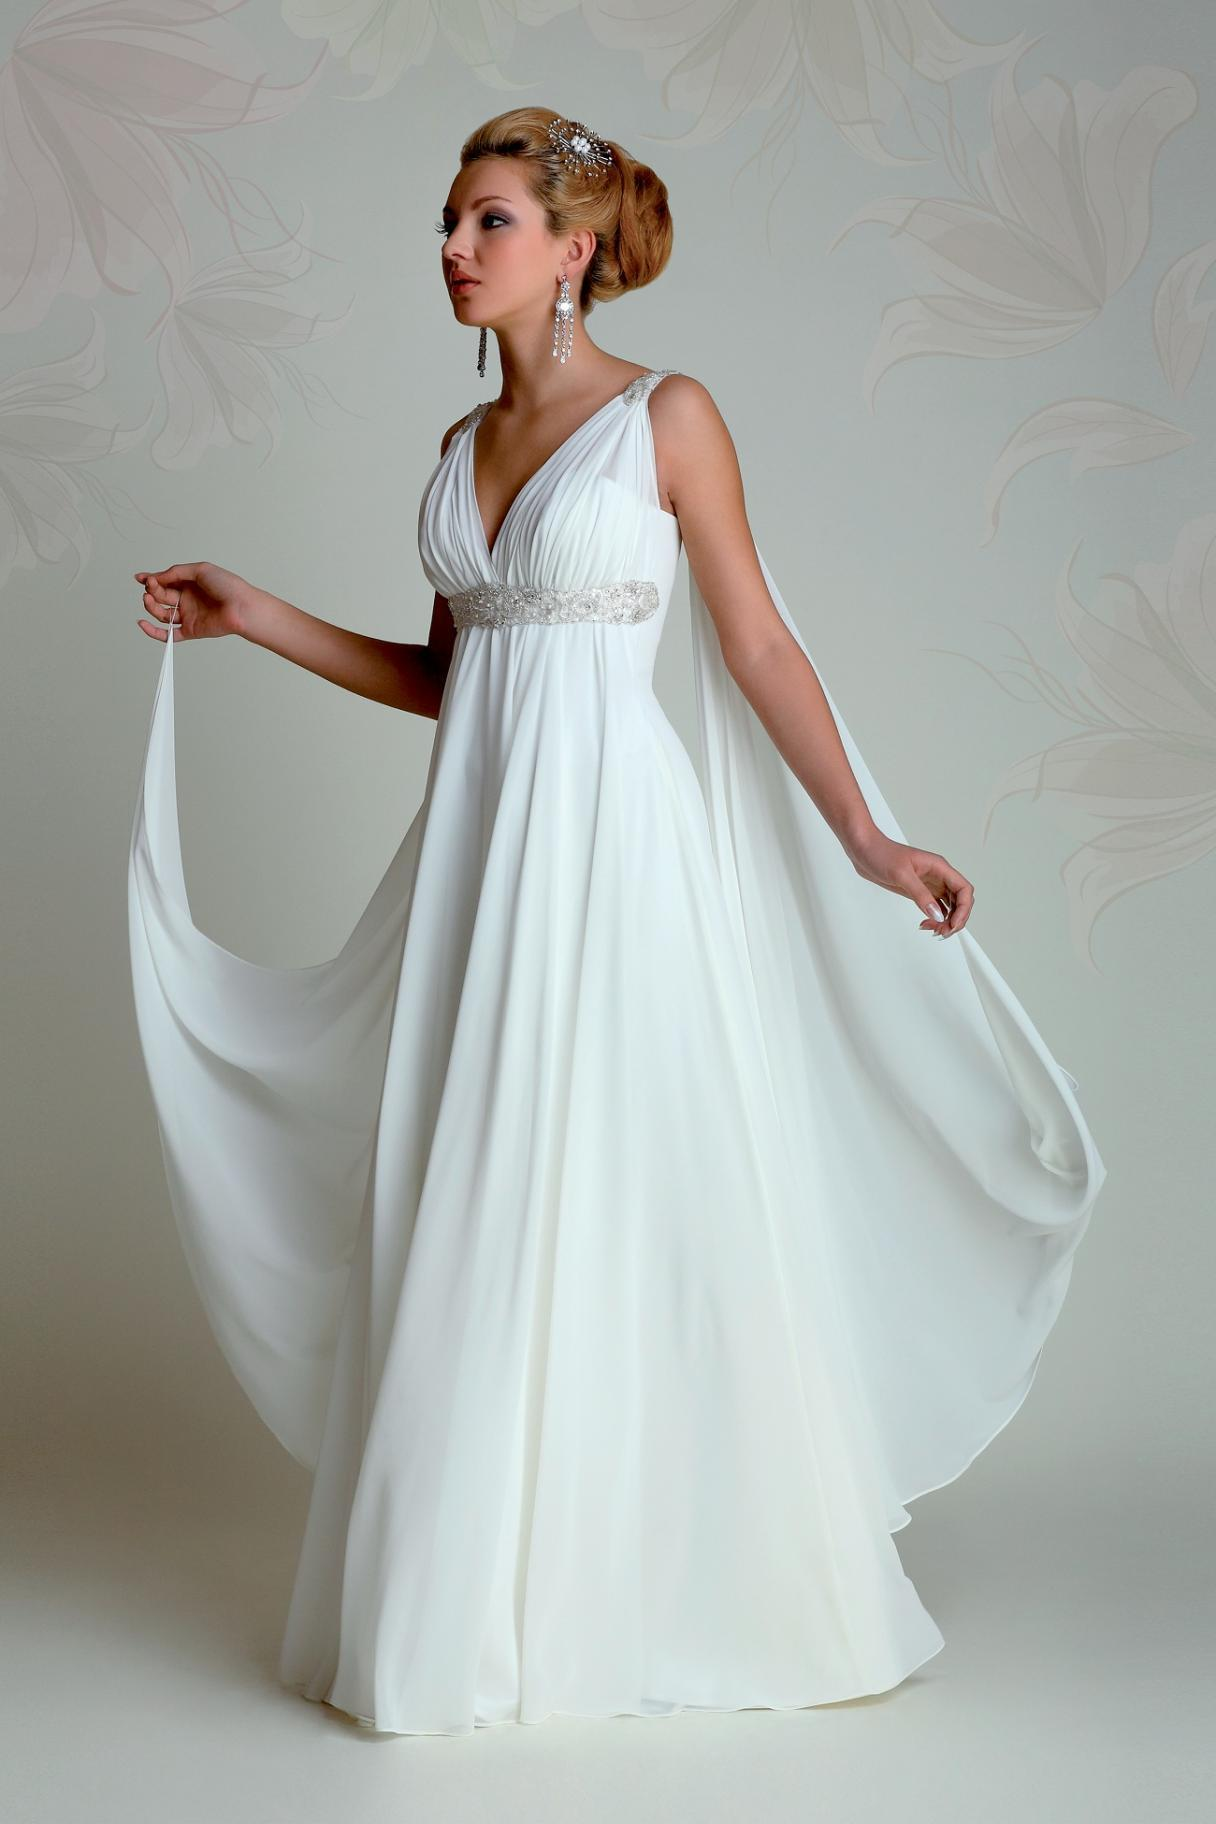 Greek Goddess Wedding Dresses 2019 V Neck Empire A Line Full Length Beading White Chiffon Summer Beach Bridal Gowns with Watteau Train